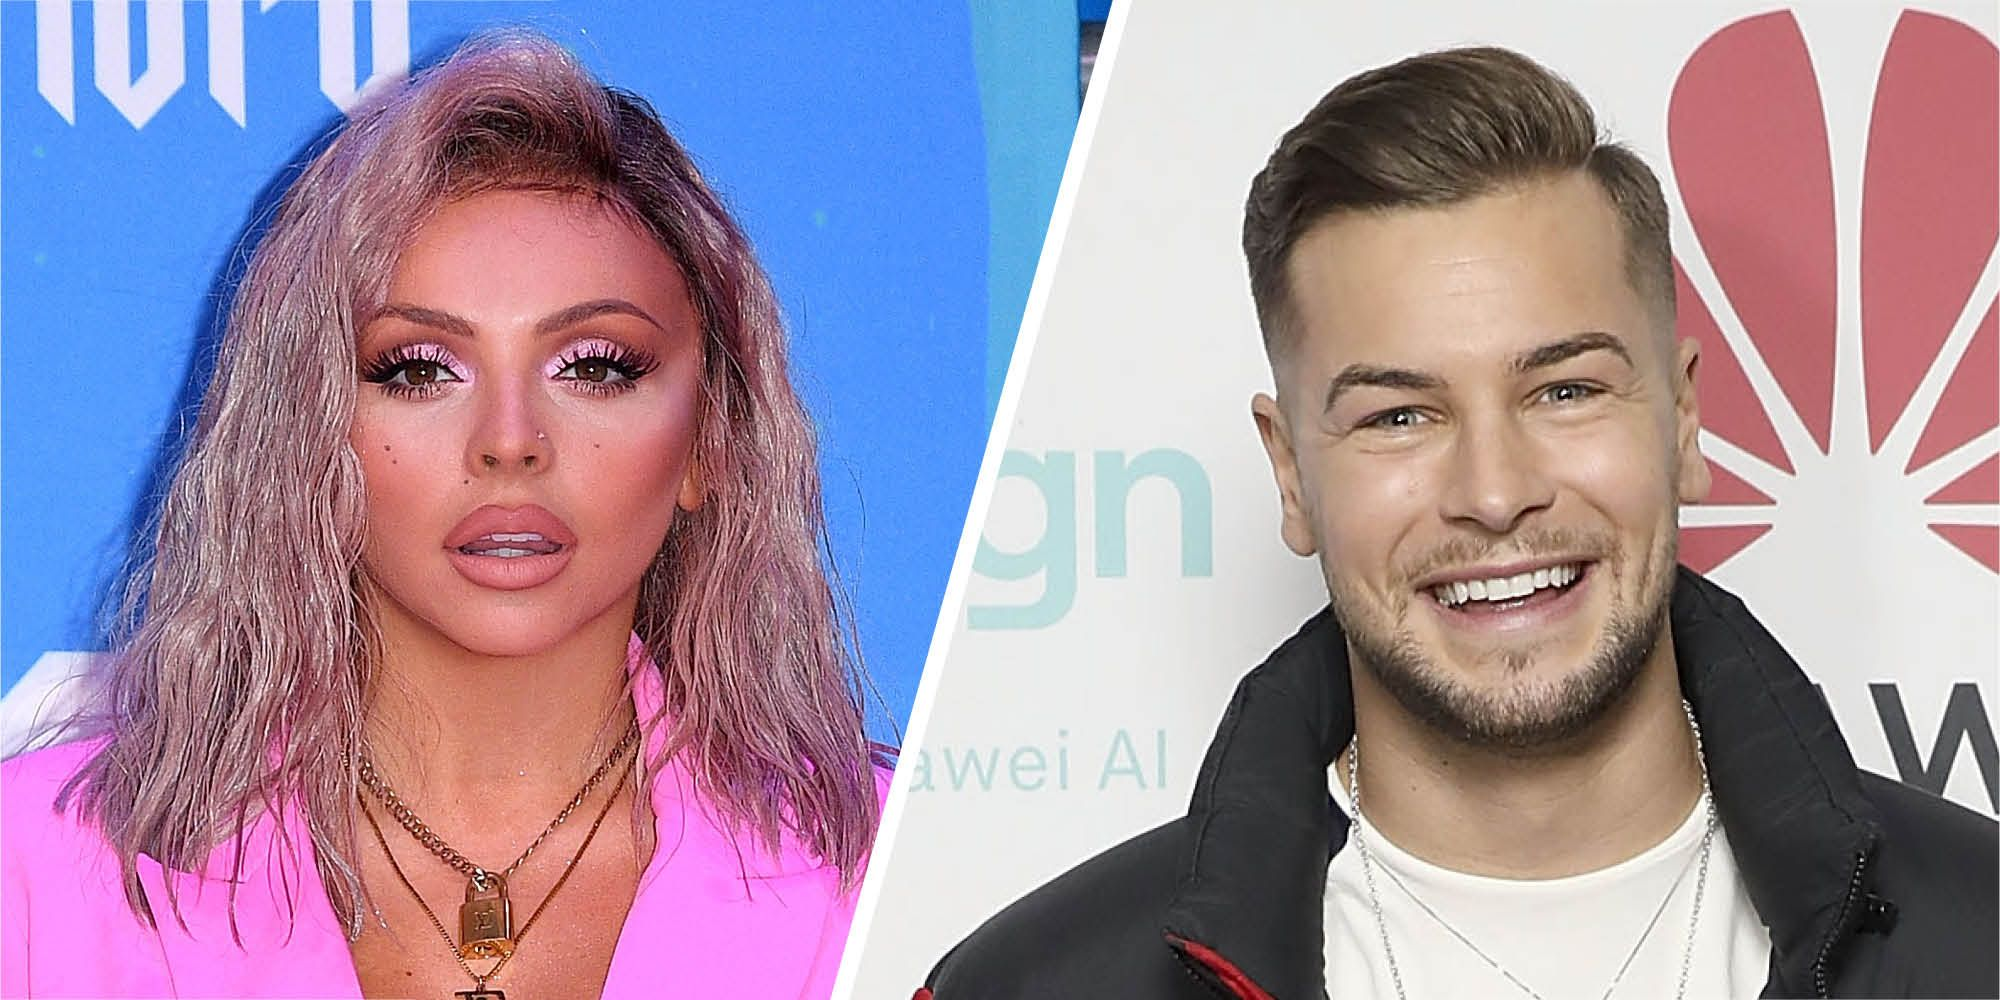 Is Little Mix's Jesy Nelson dating Love Island's Chris Hughes?